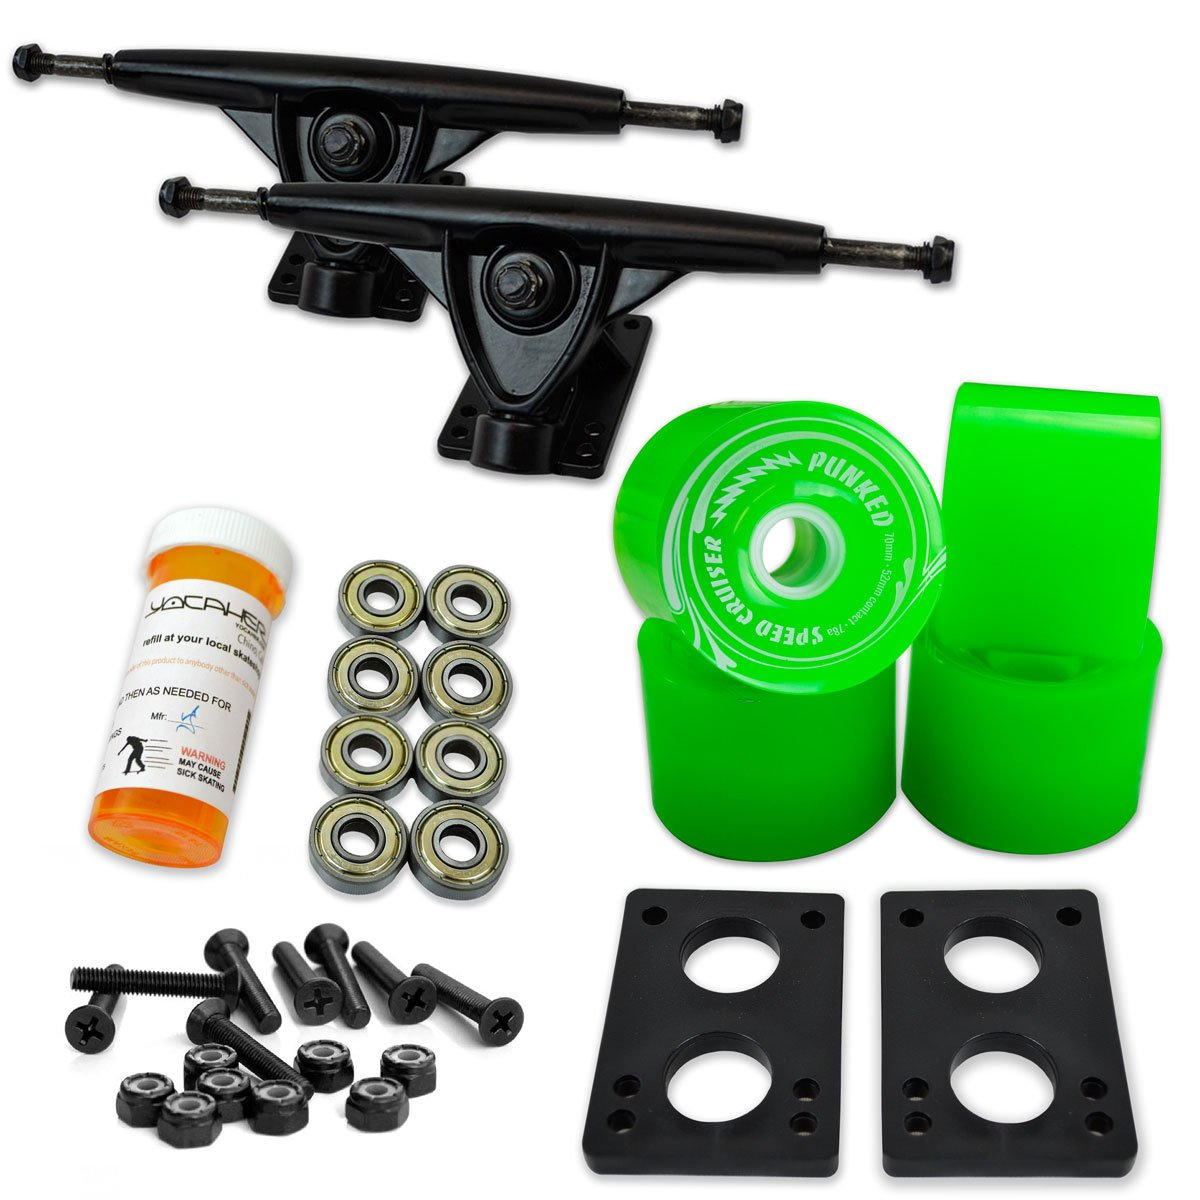 Yocaher Longboard Skateboard Trucks Combo Set w/ 71mm Wheels + 9.675'' Polished/Black Trucks Package, Solid Neon Green Wheel, Black Trucks by Yocaher